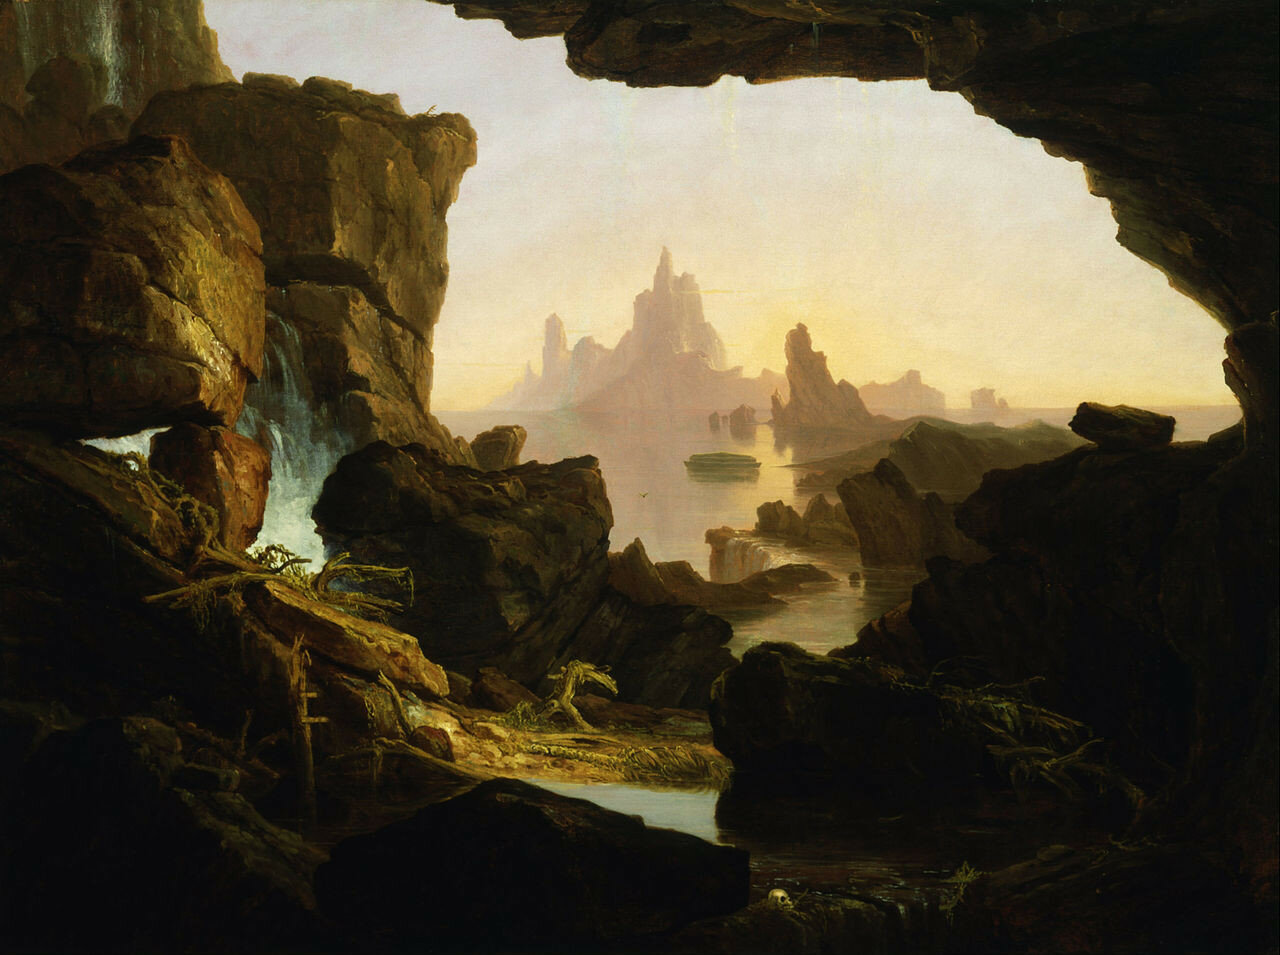 1280px-Thomas_Cole_-_The_Subsiding_of_the_Waters_of_the_Deluge_-_Google_Art_Project.jpg